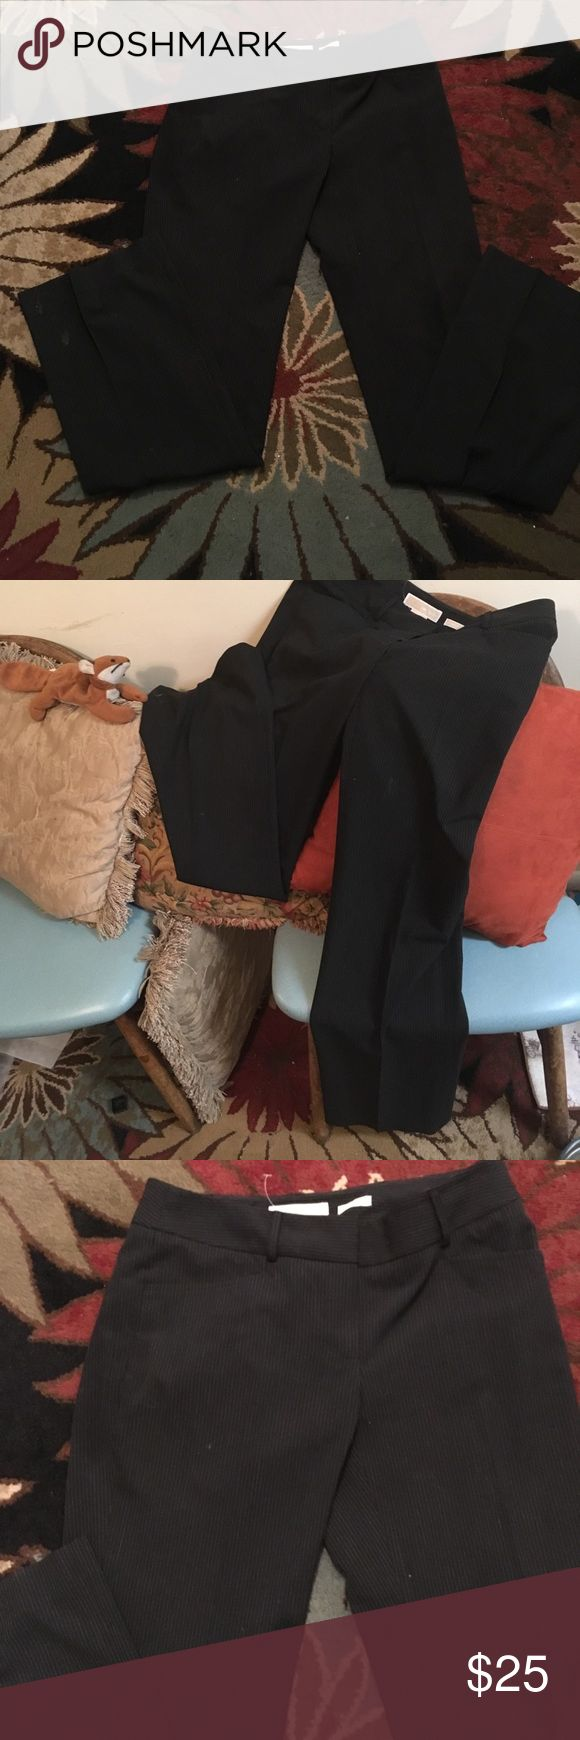 Great pair of Michael Kors work pants white stripe Great work pants that don't wrinkle!  Comfy to wear and look fantastic!  Michael Kors gramercy fit black with white pinstripes!  Had tag but the paper fell off... Michael Kors Pants